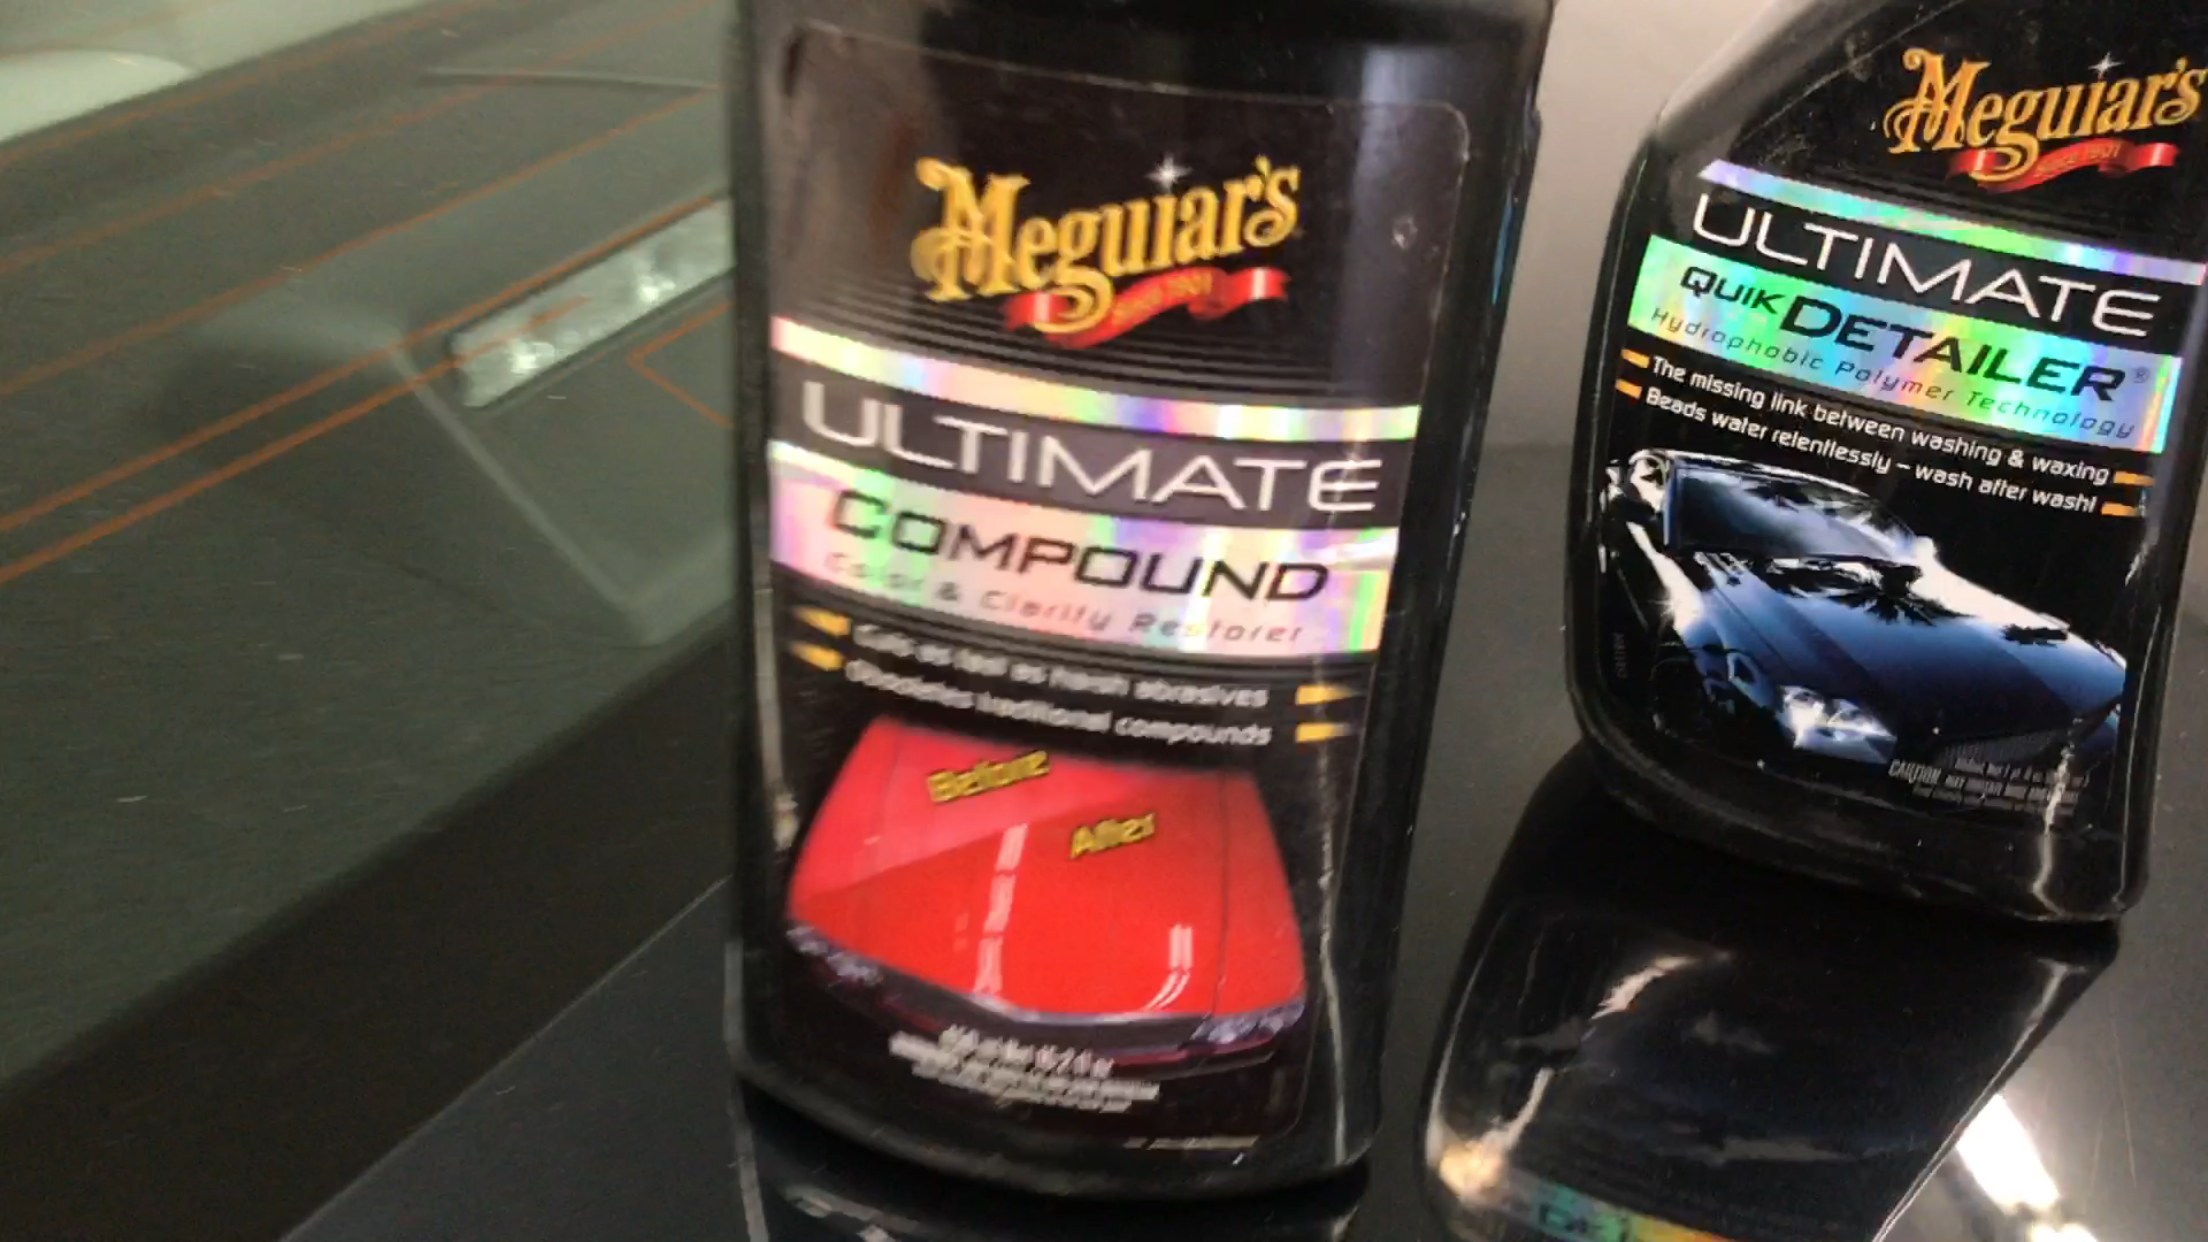 Meguiars Ultimate Compound, used in video of 2011 Toyota Camry Dent Removal, by Michael Bocek out of Springfield, IL. http://217dent.com